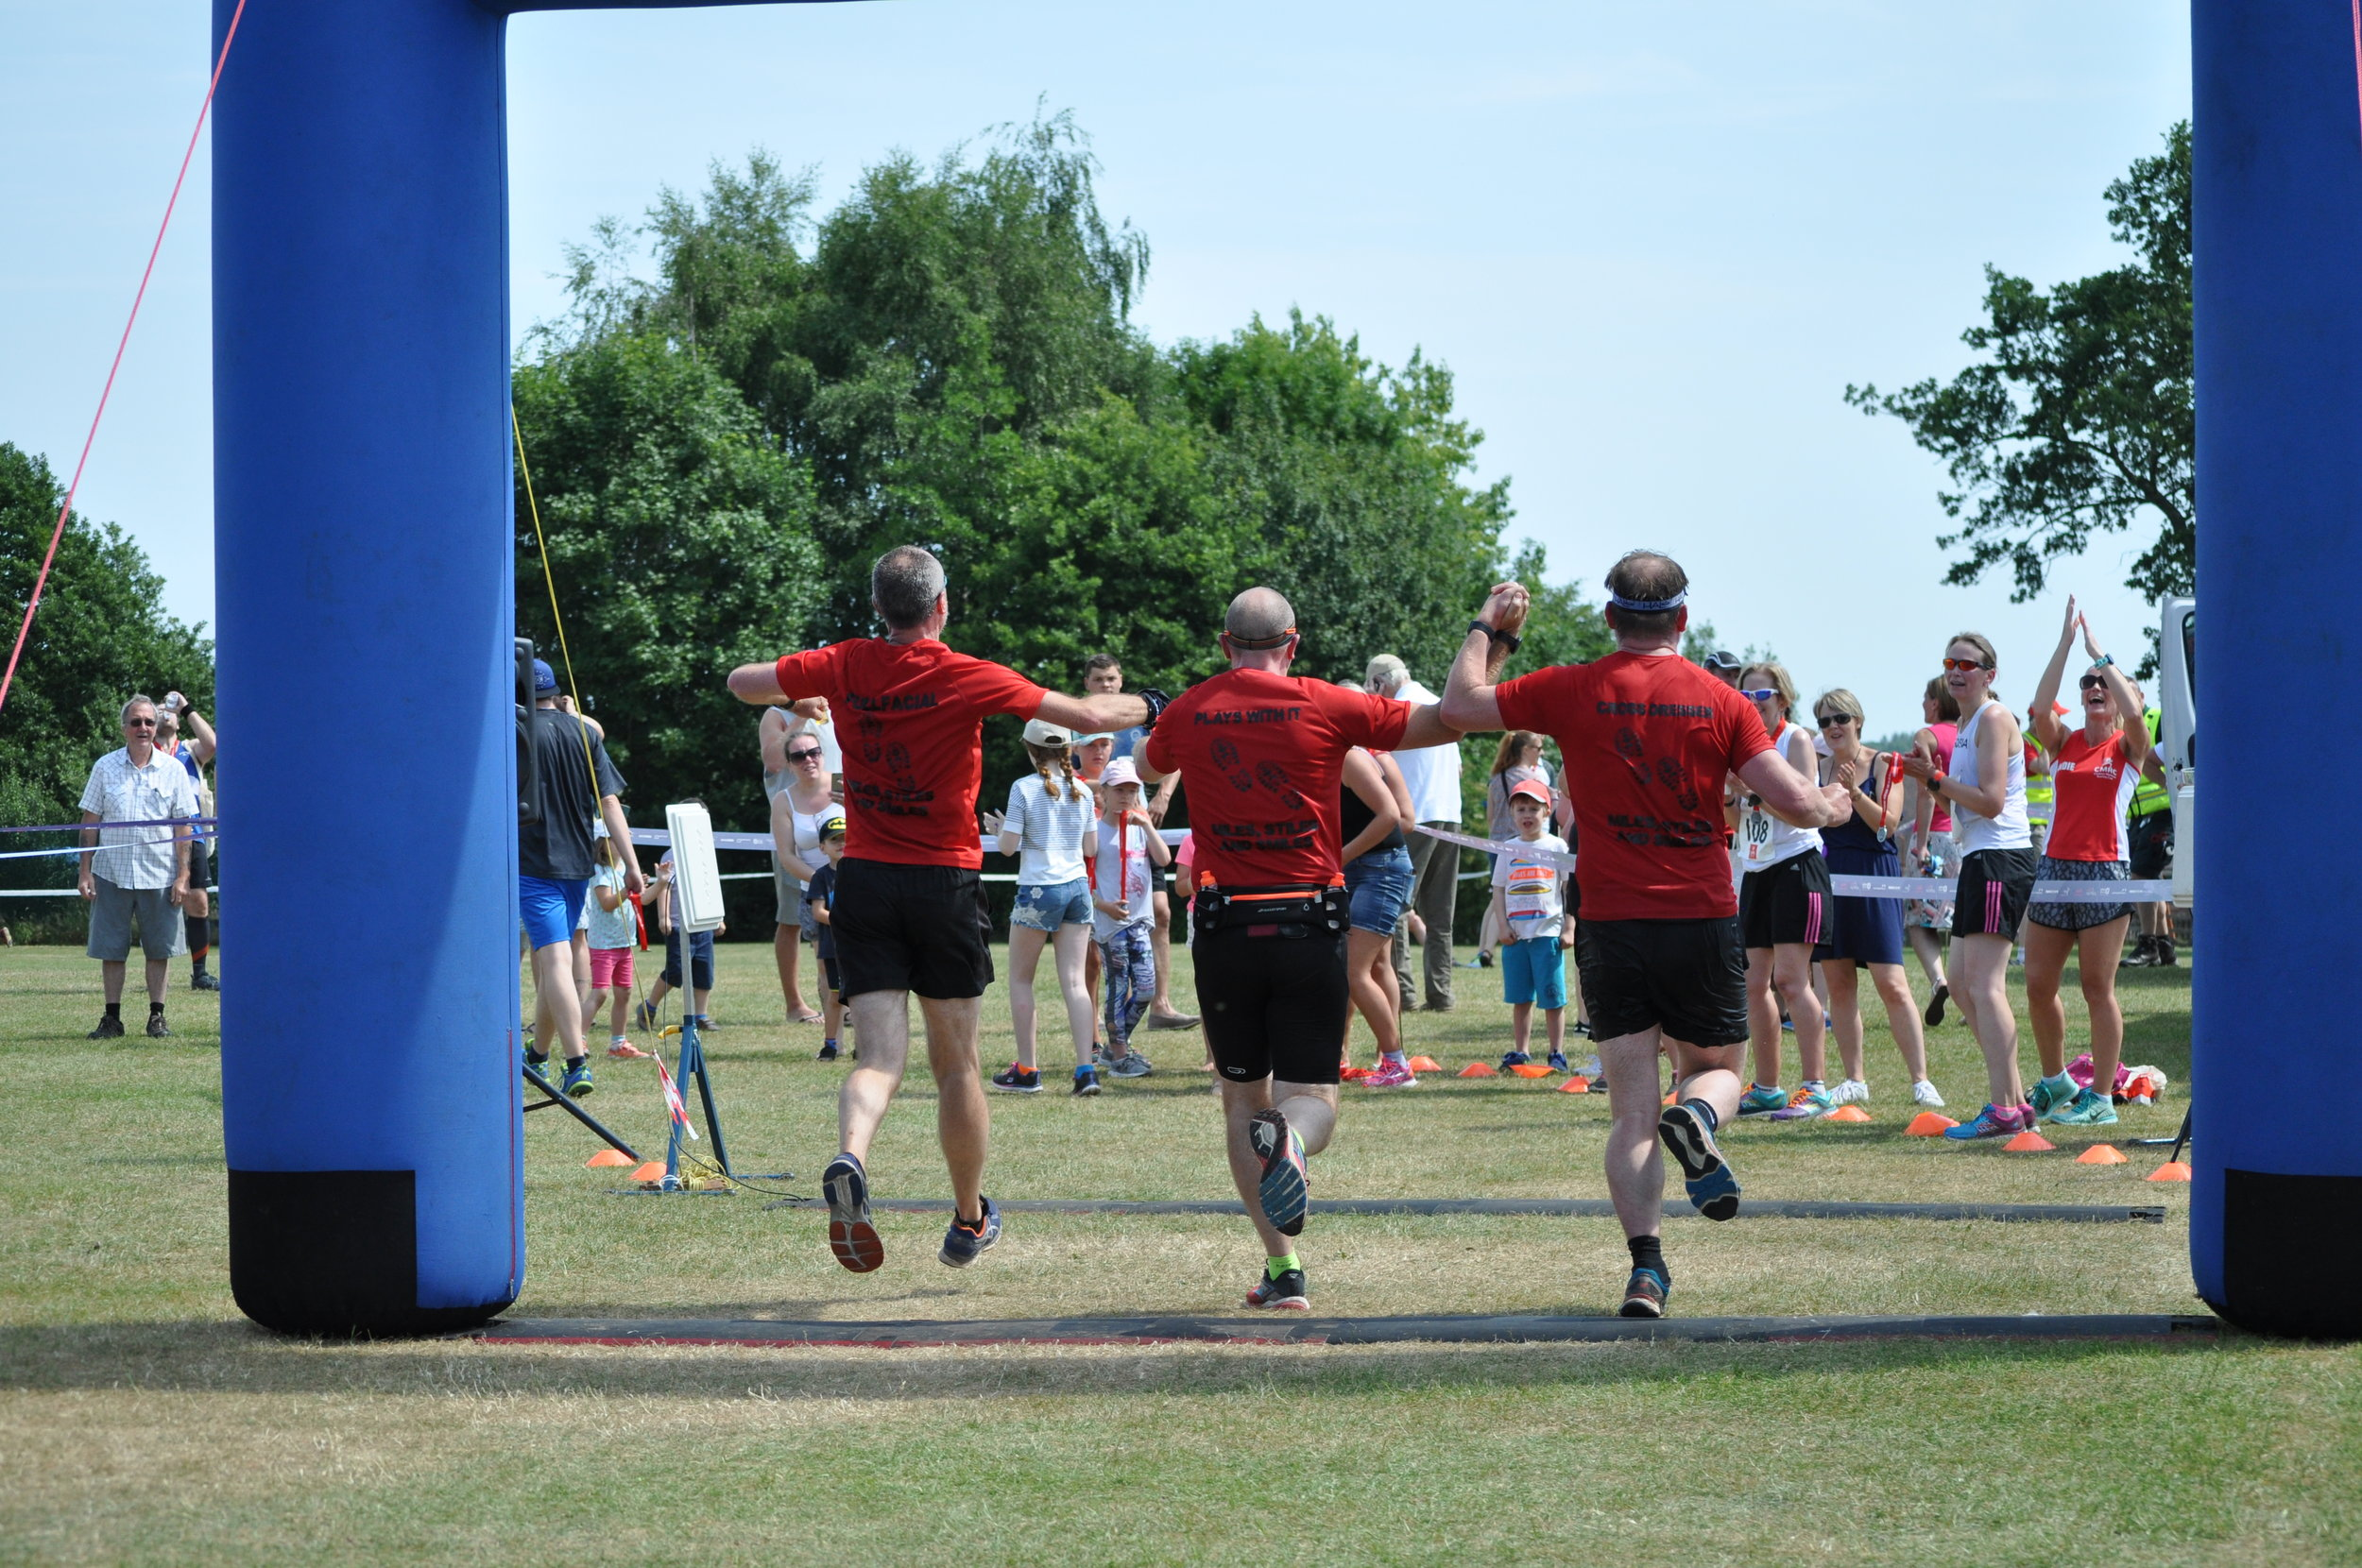 Cleobury Mortimer 10K   We are proud to host the Cleobury Mortimer 10K again   7th July - 10 AM    Learn More